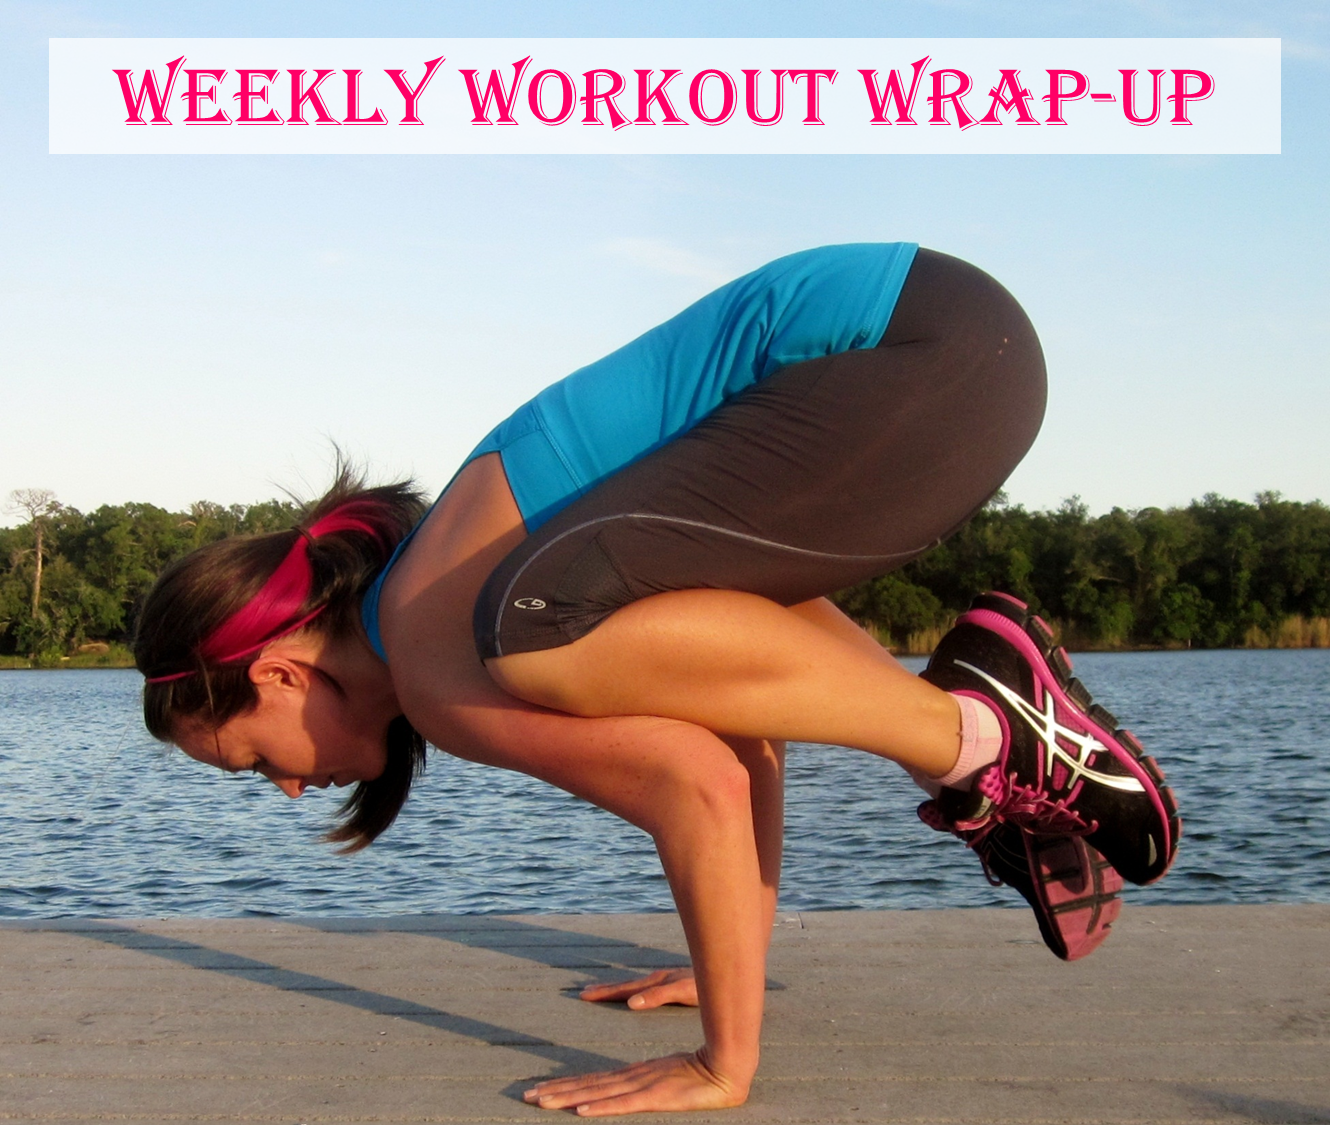 Workout Wrap Up